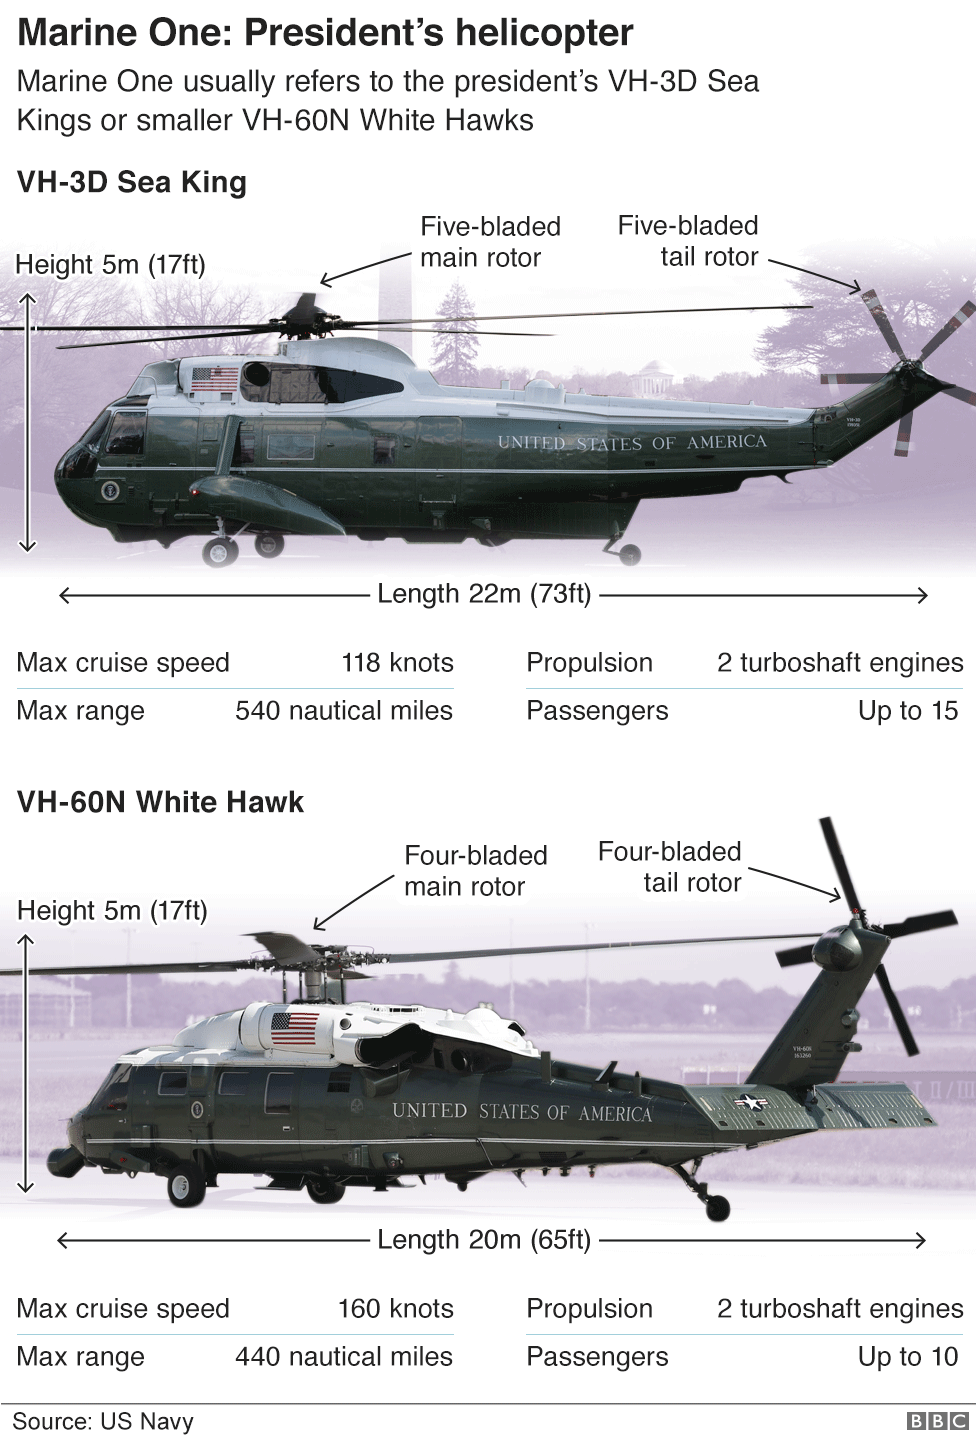 Infographic of Marine One